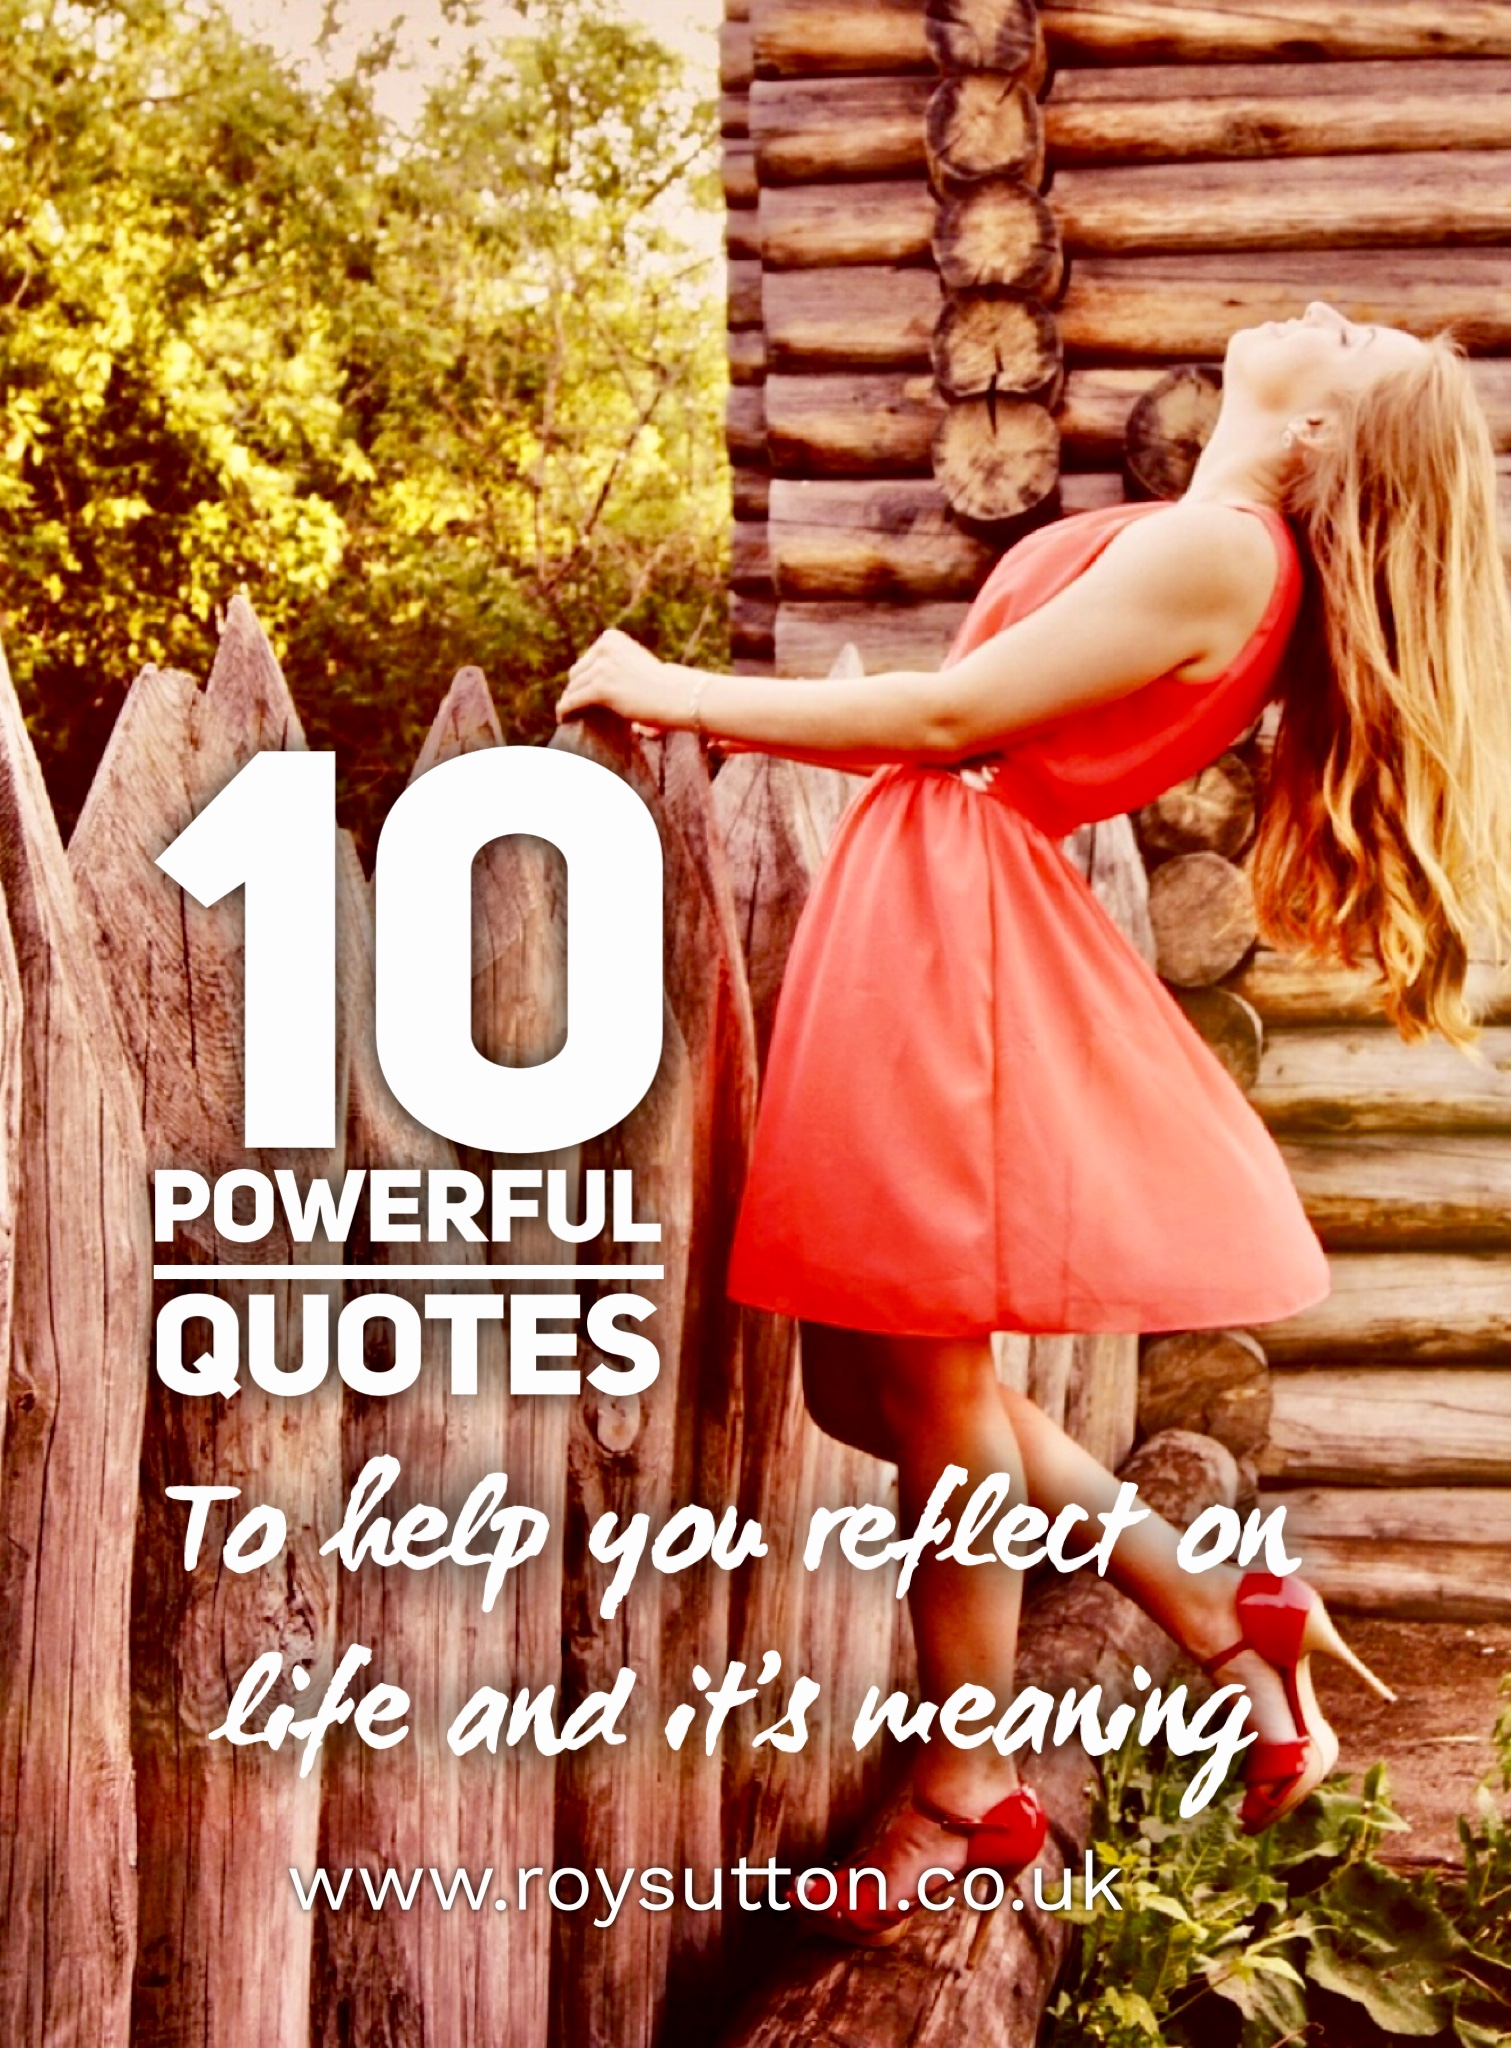 10 Powerful Quotes To Help You Reflect On Life And Its Meaning